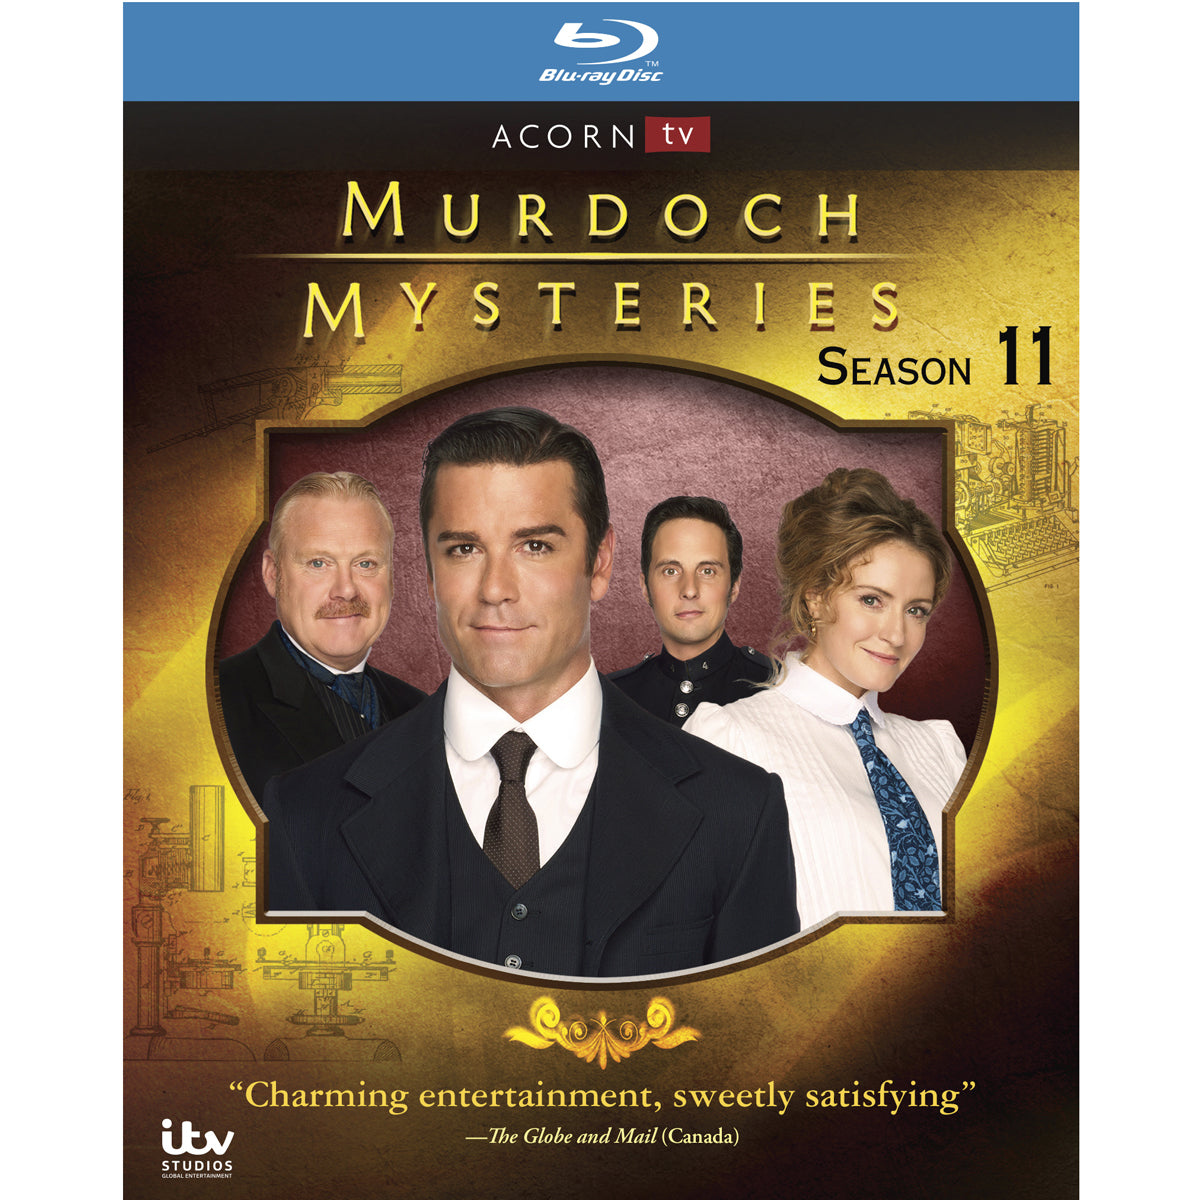 Murdoch Mysteries: Season 11 (Blu-ray)